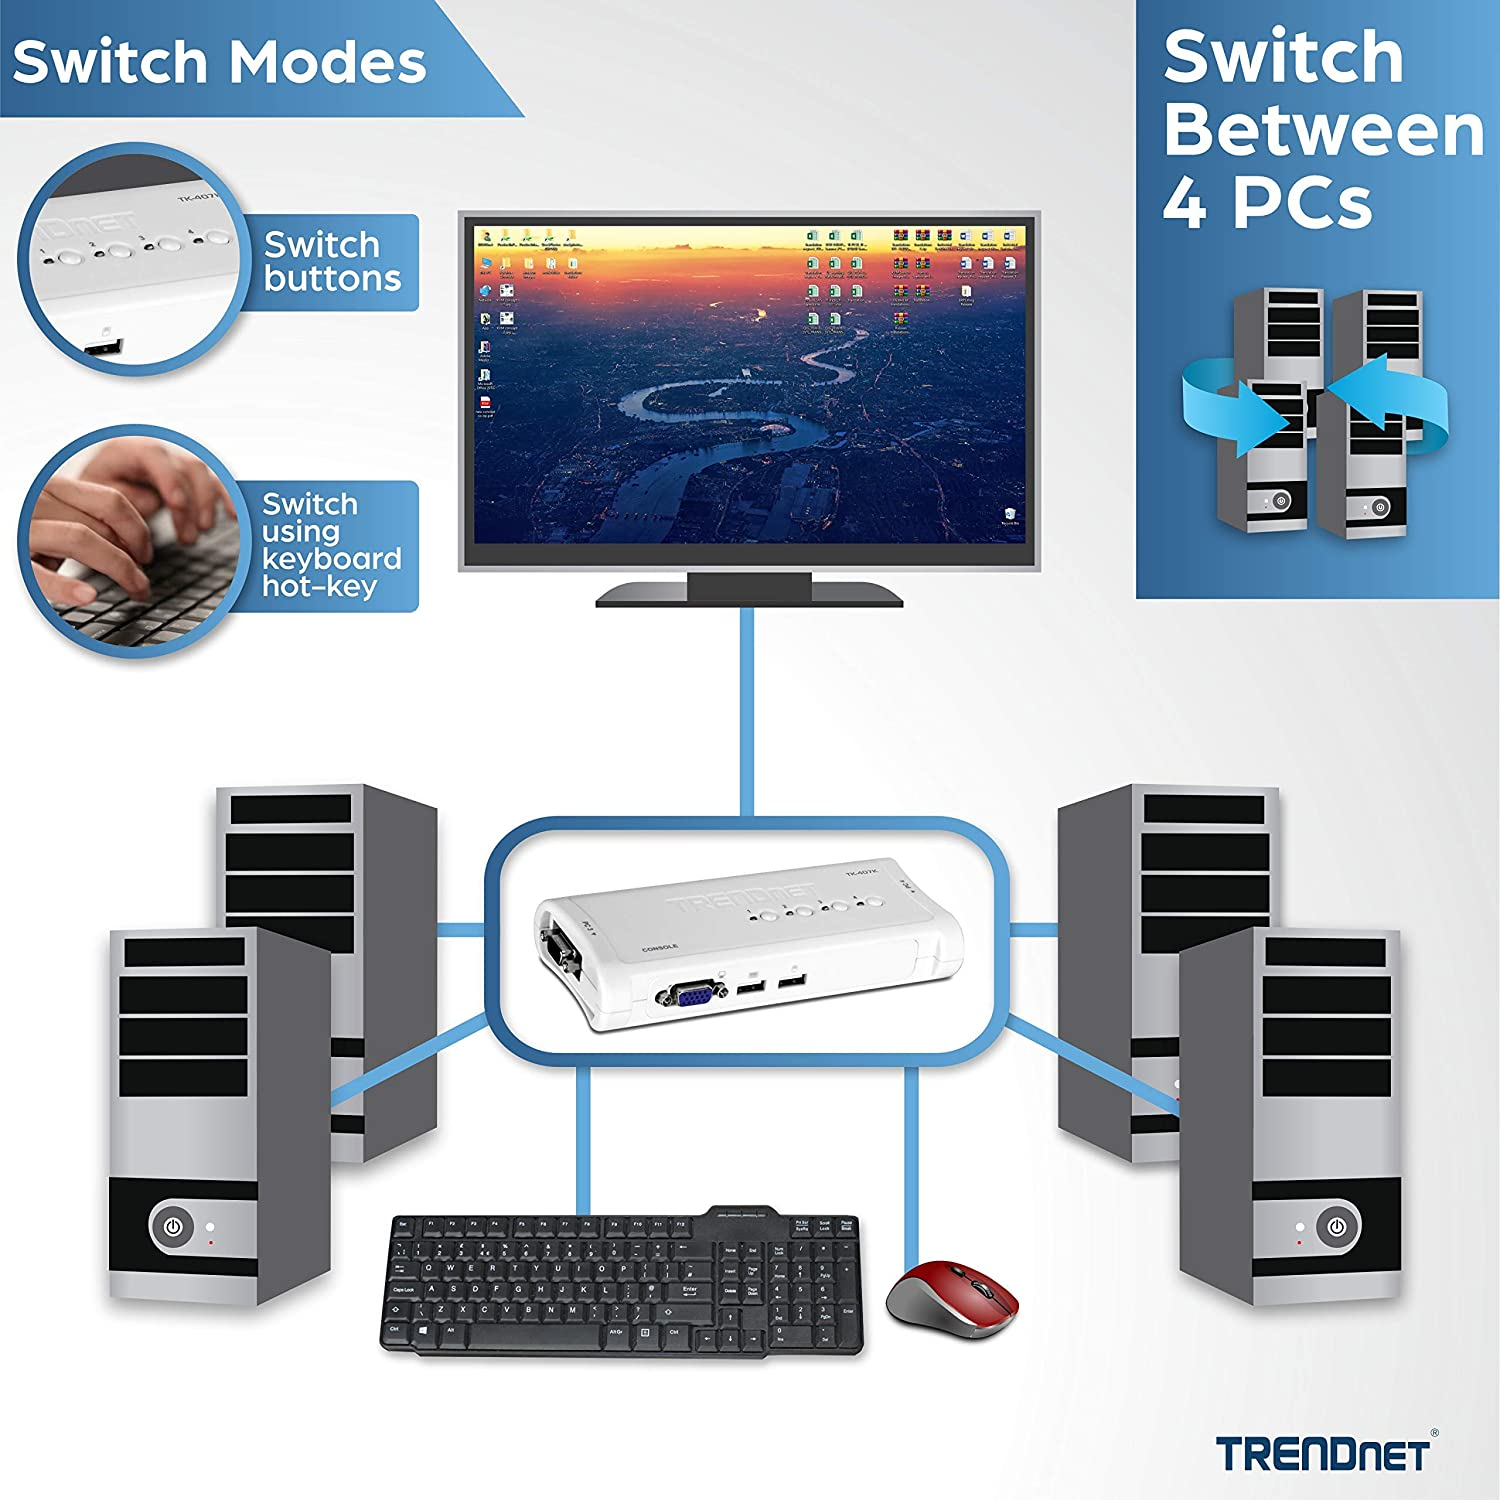 Renewed VGA /& USB Connections TK-407K Cabling Included TRENDnet 4-Port USB KVM Switch Kit 2048 x 1536 Resolution Control up to 4 Computers